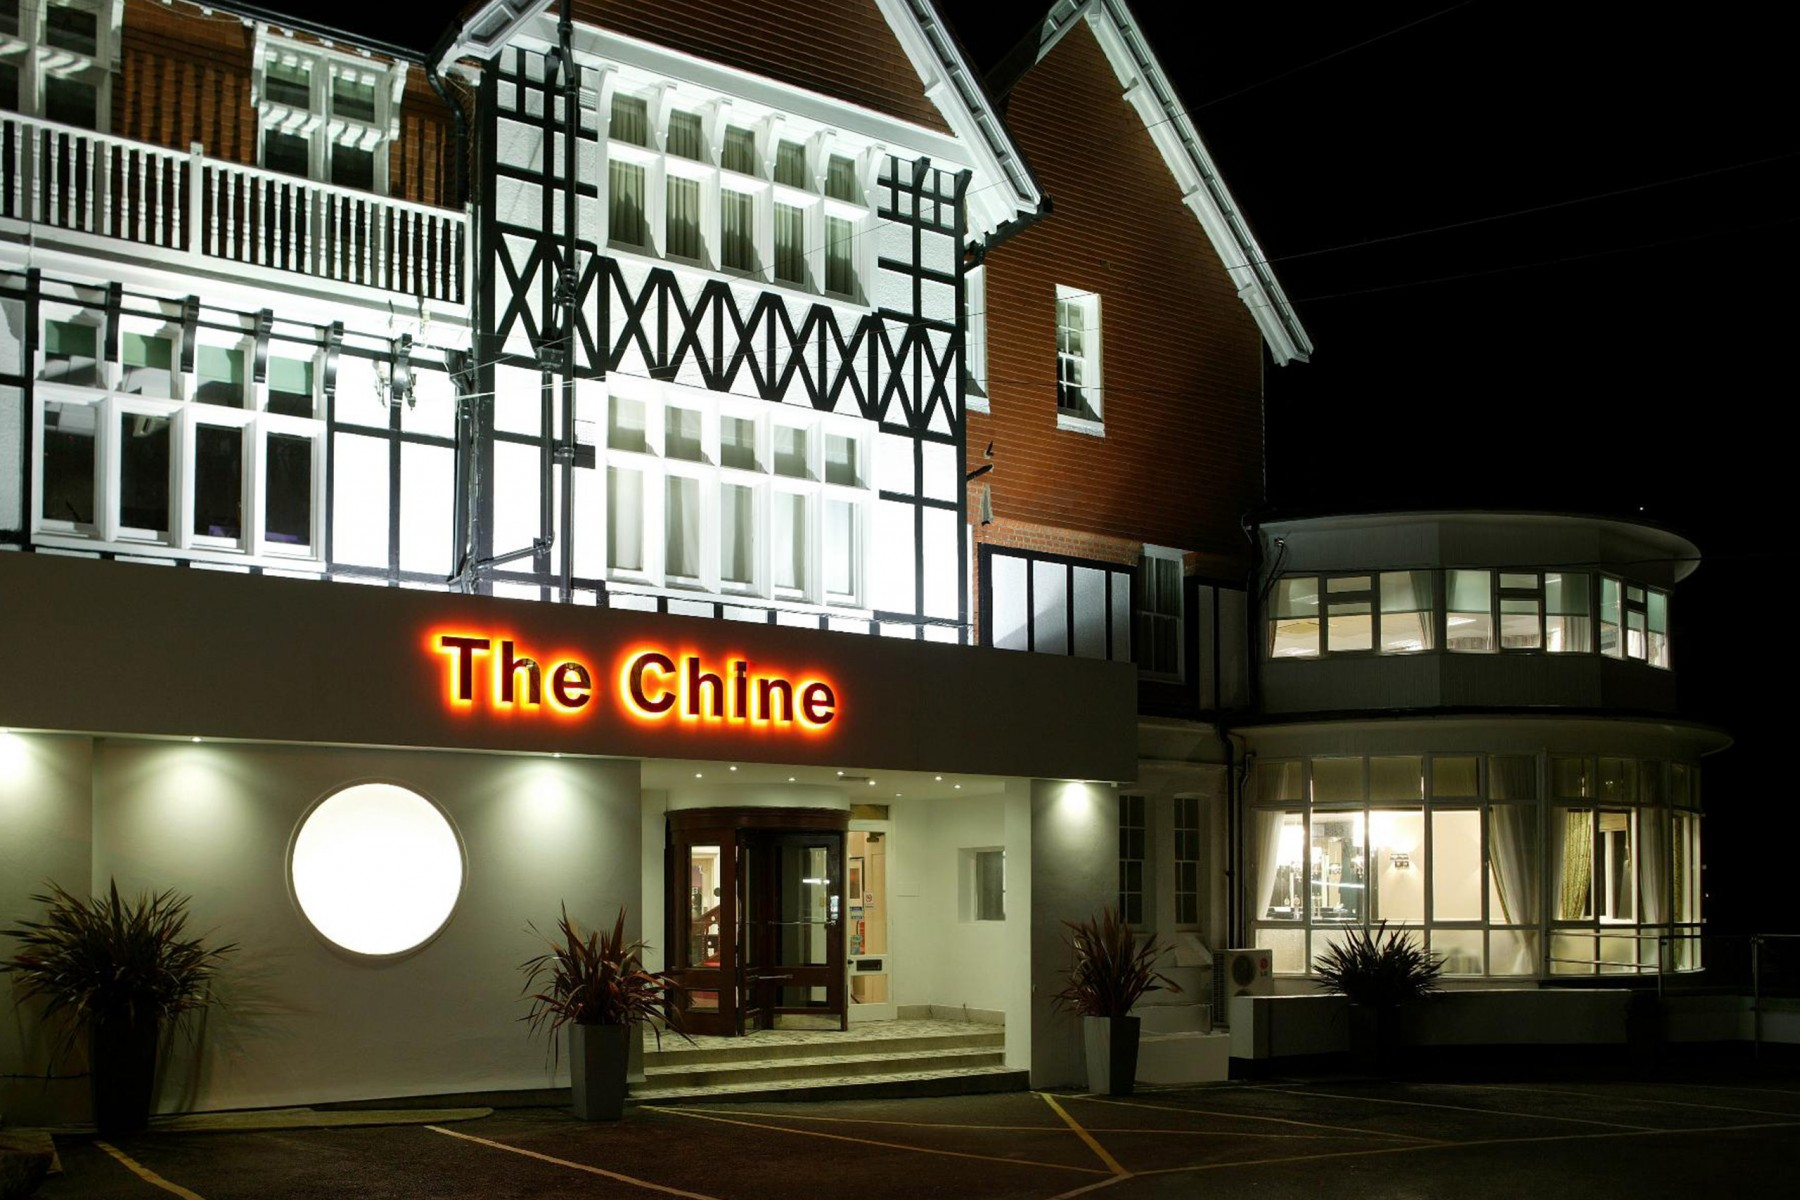 Image Gallery The Chine Hotel Bournemouth